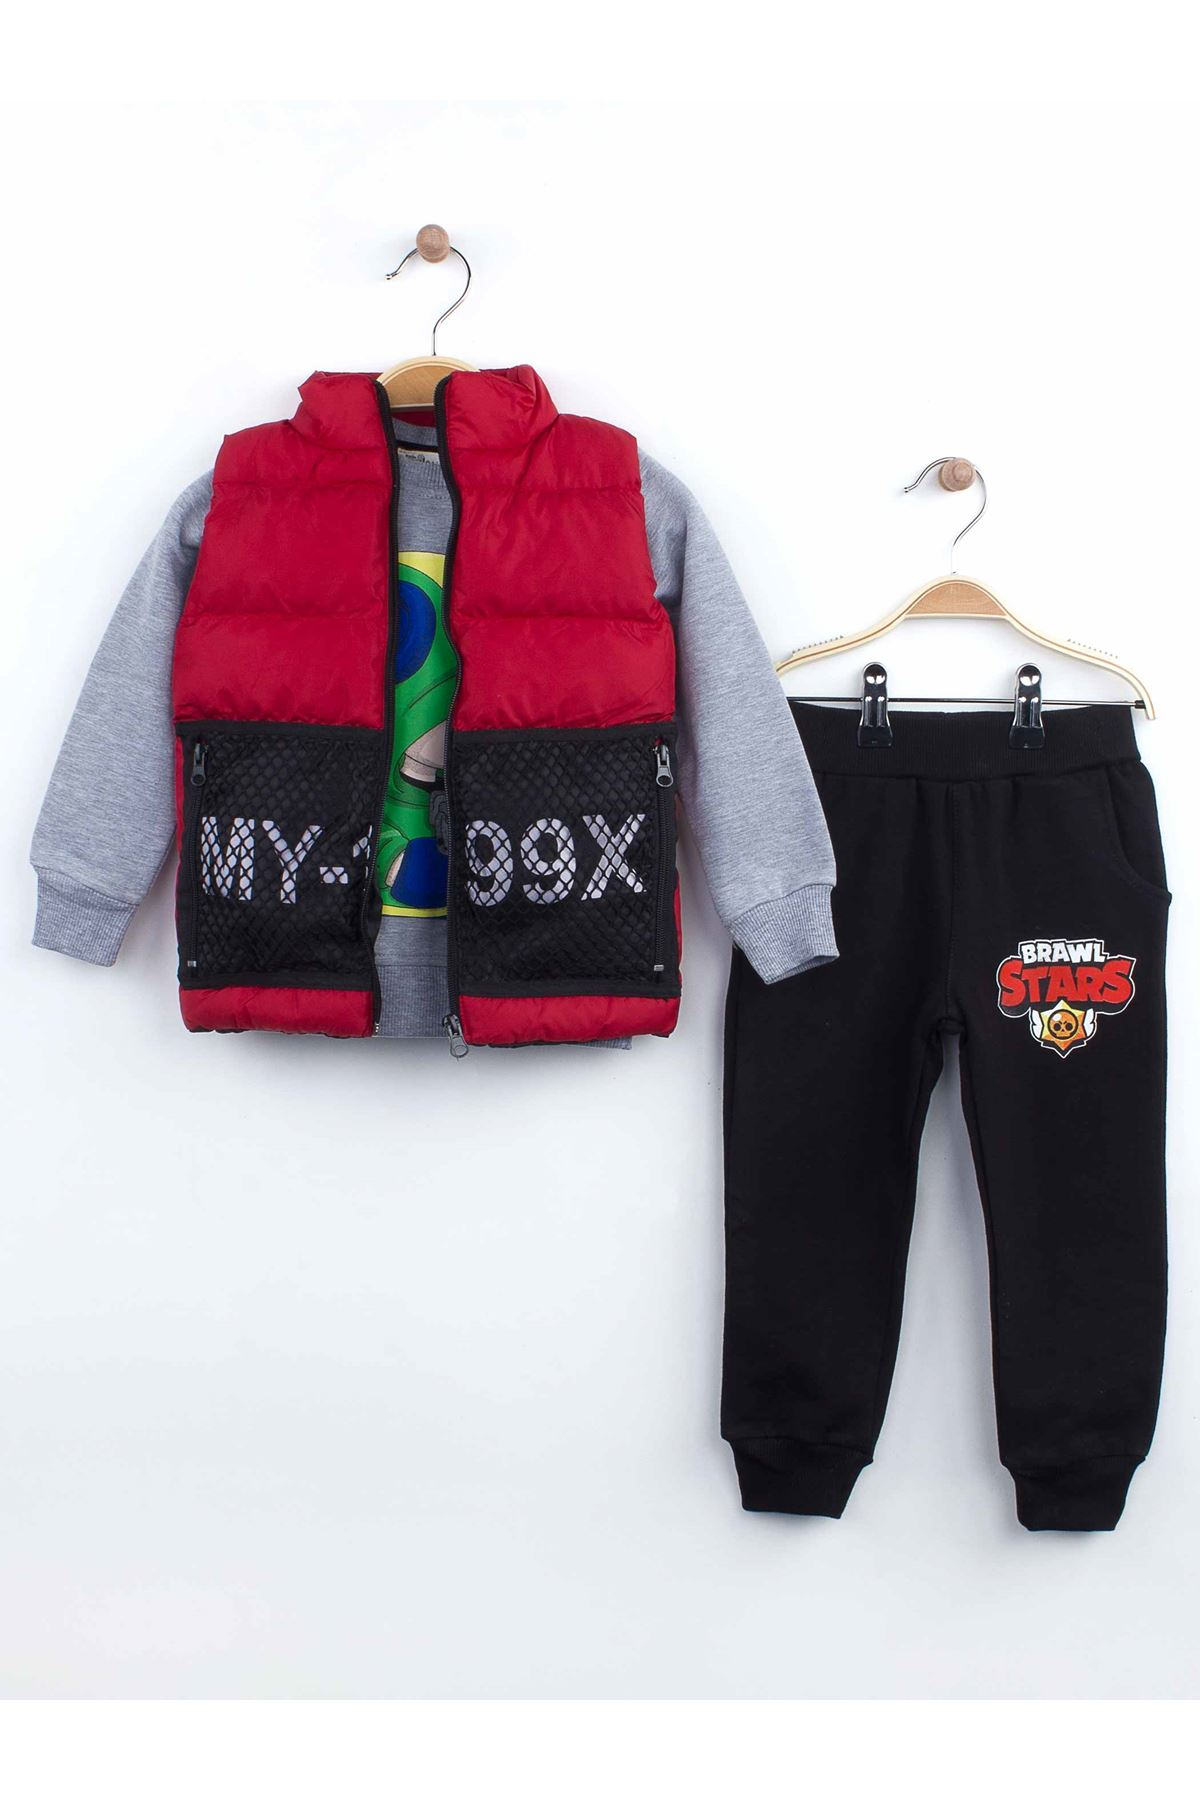 Red Winter Inflatable Vest Male Child 3 PCs Set